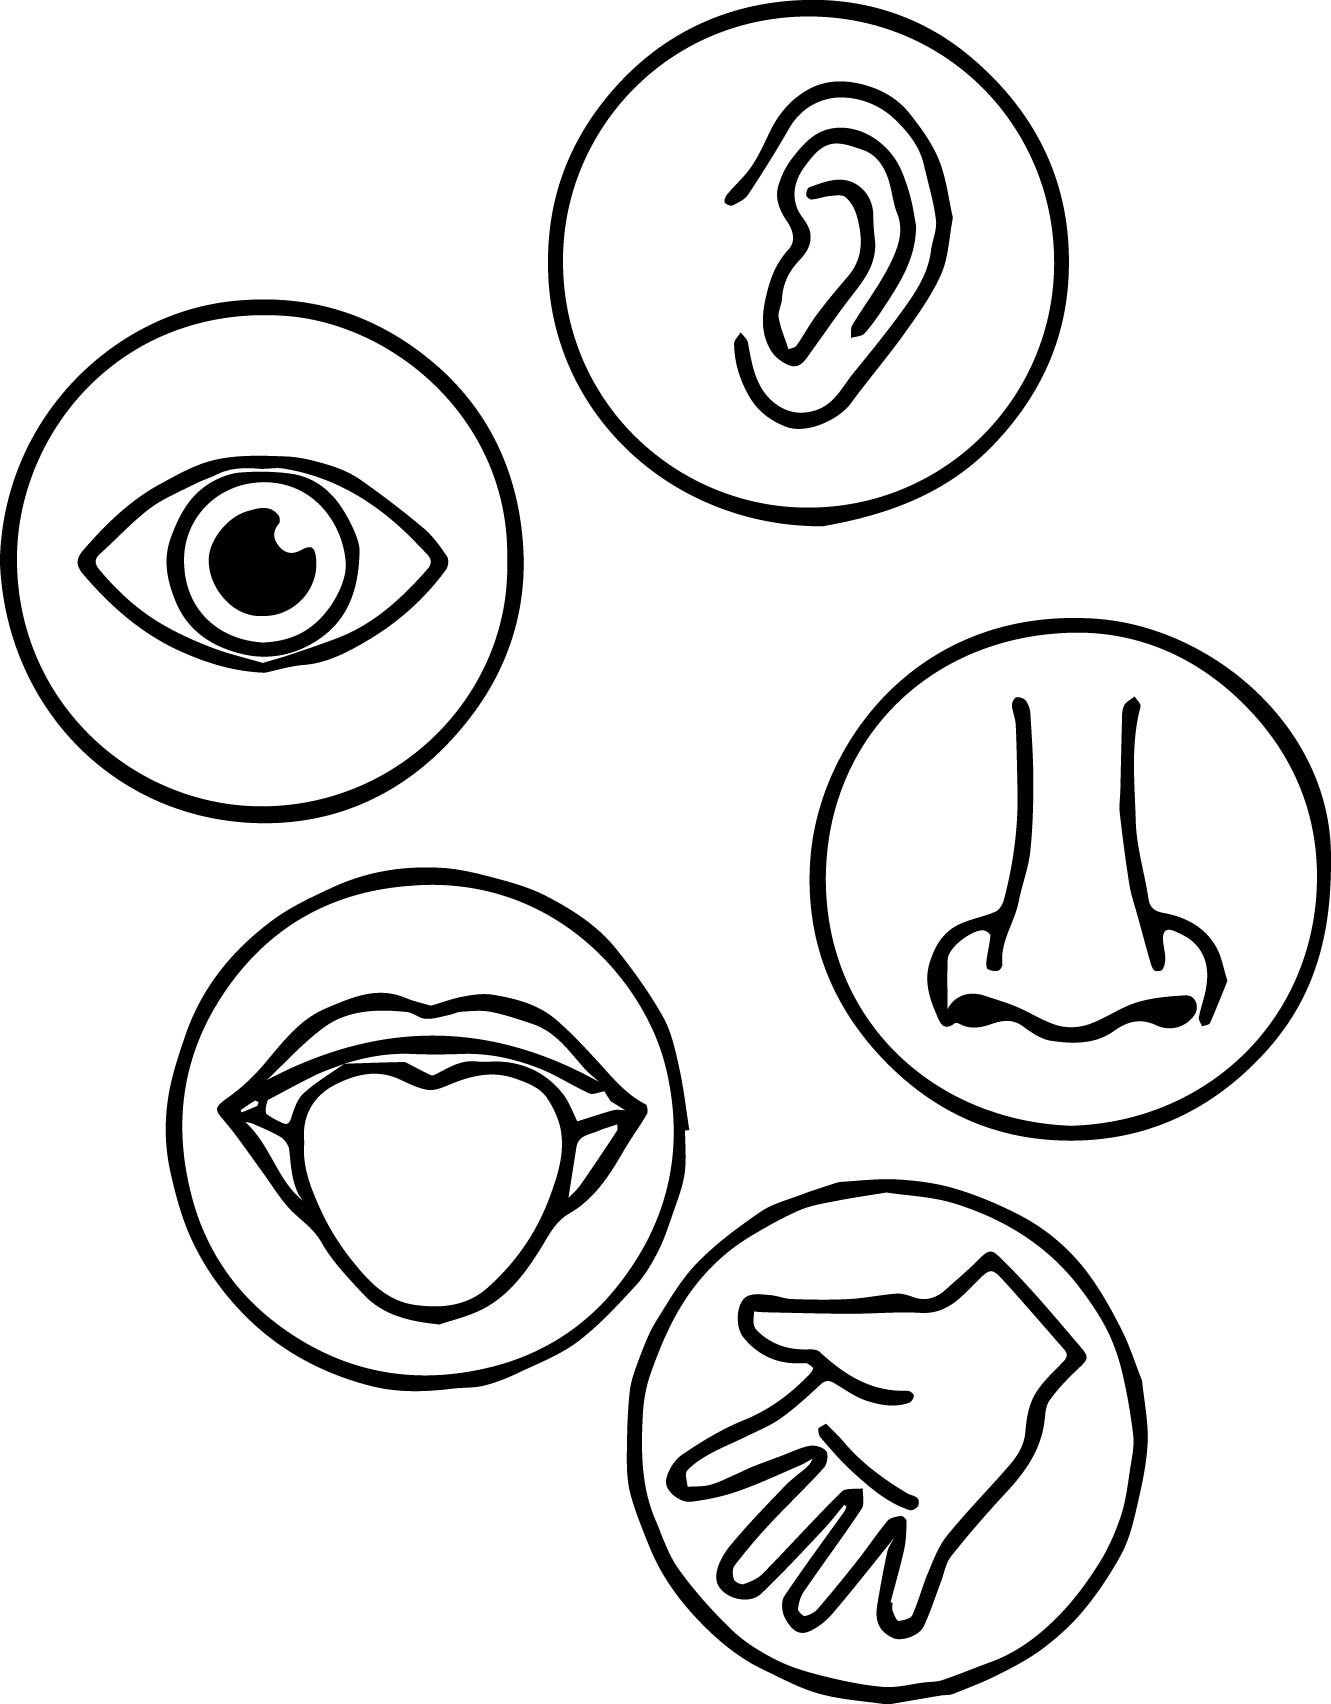 Awesome Senses Coloring Page